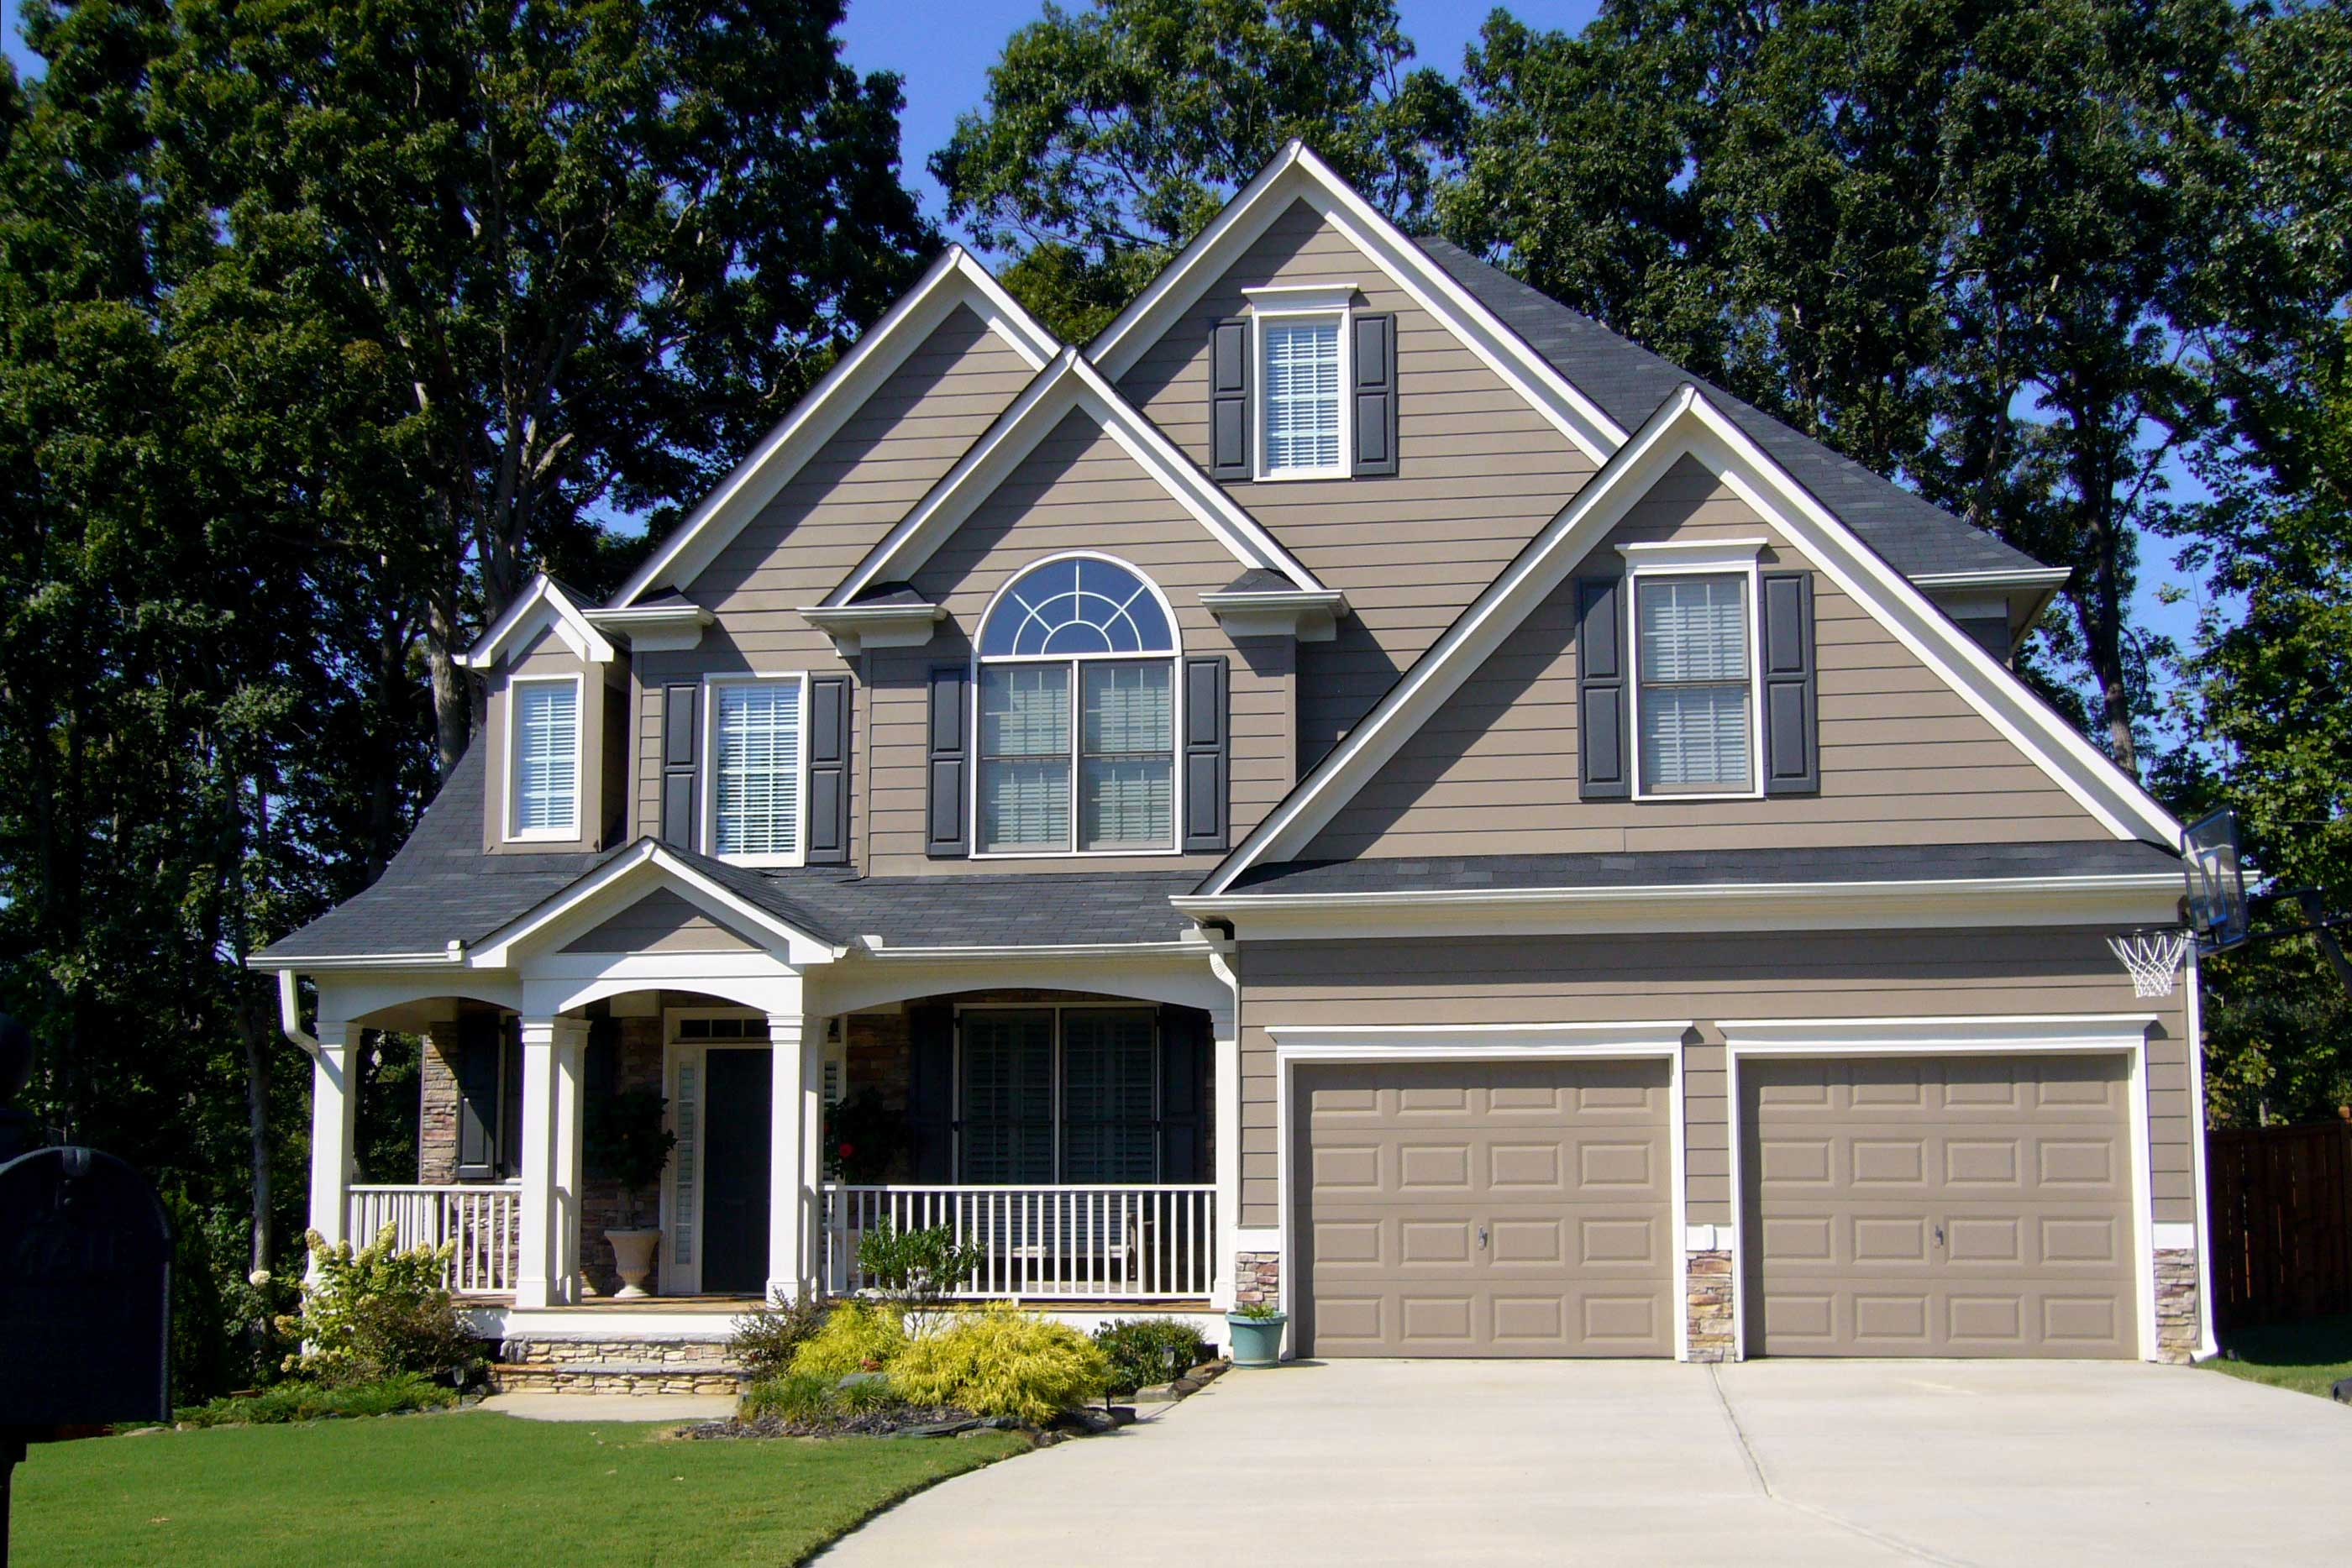 Country House Plan 163 1001 4 Bedrooms 2757 Sq Ft Home Plan